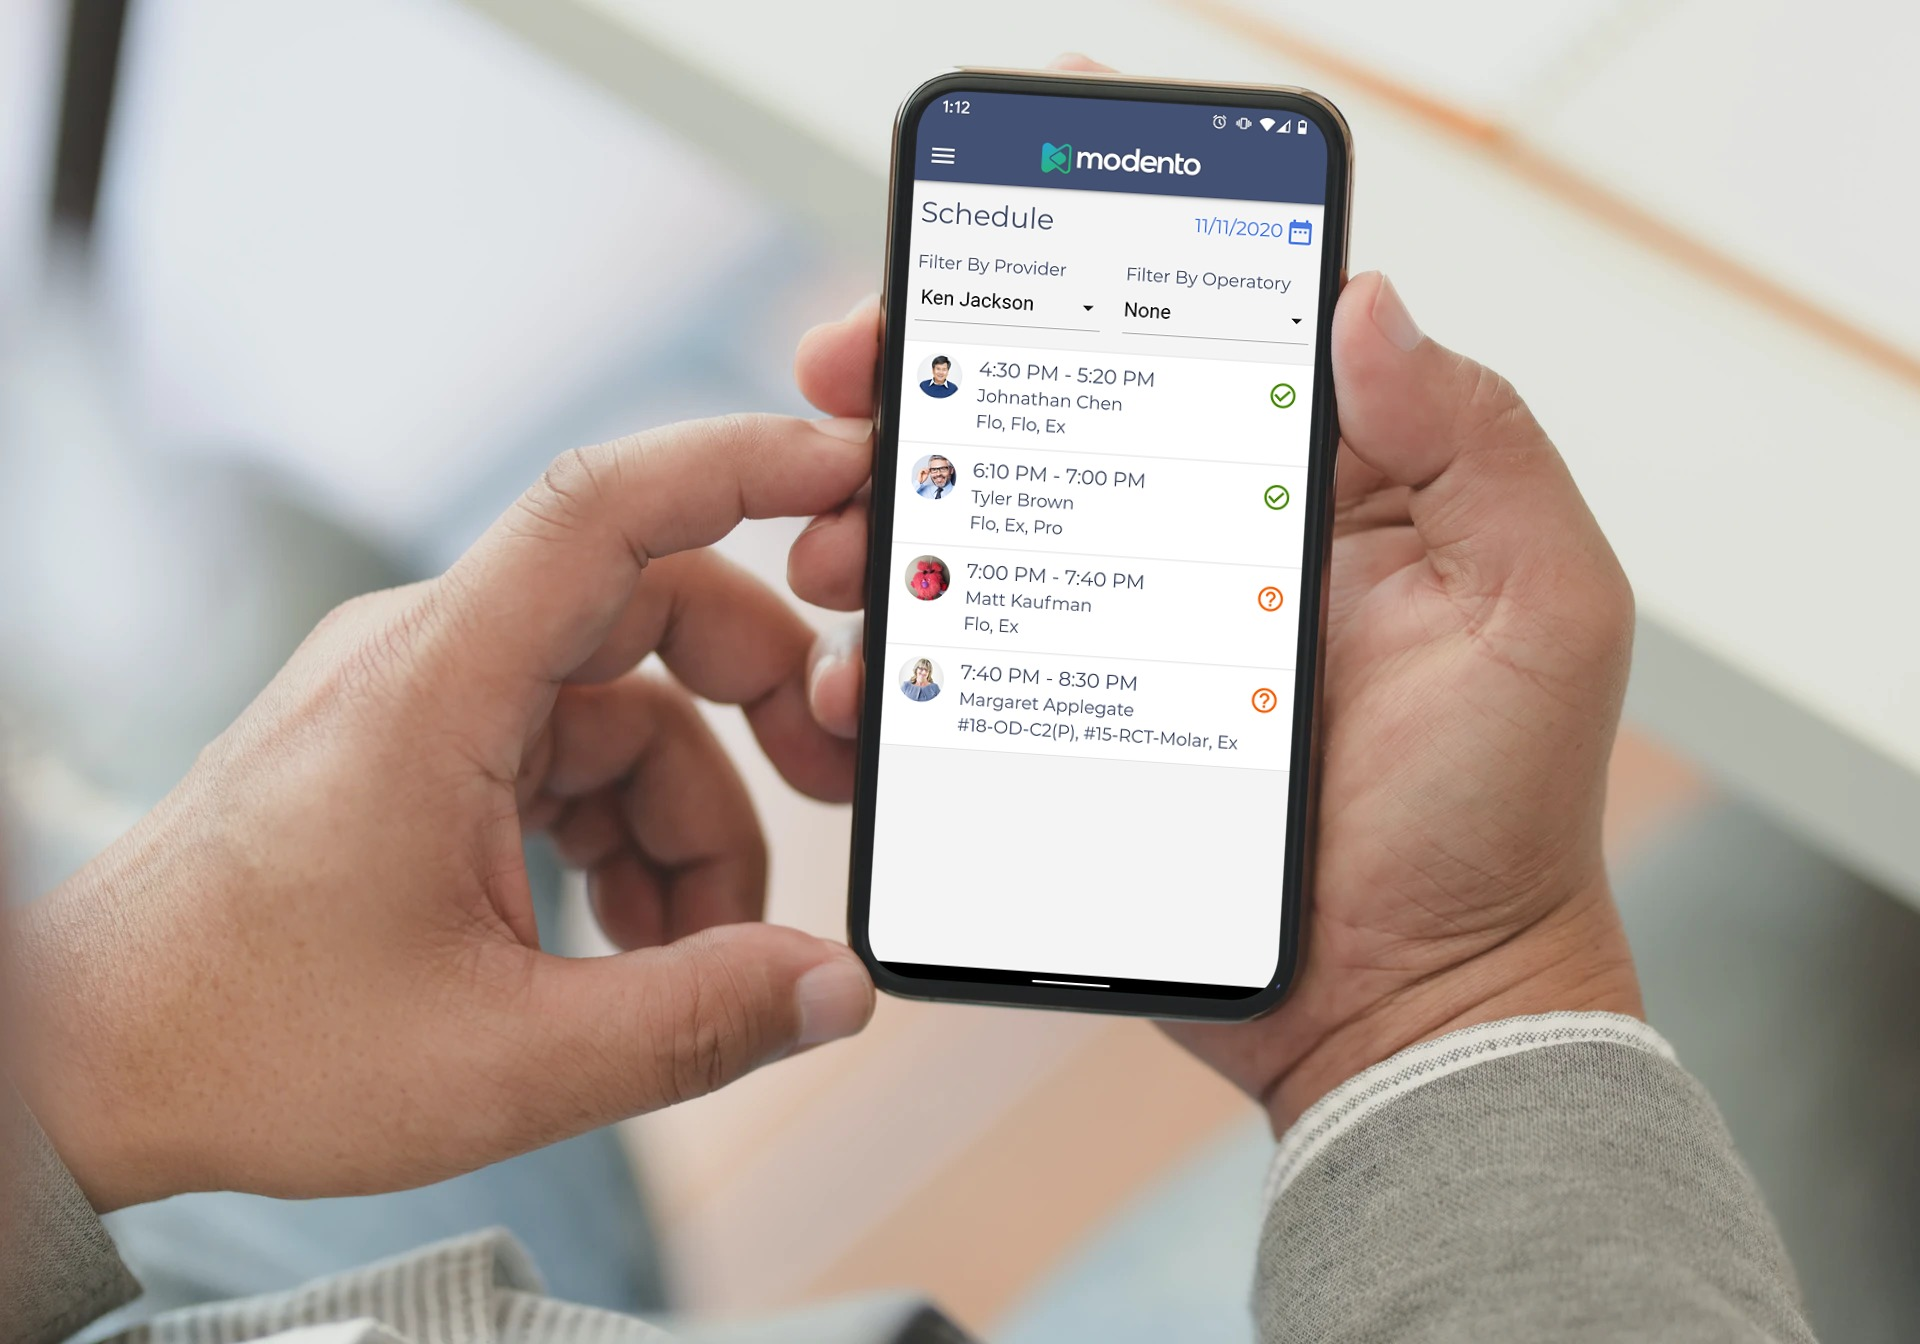 Modento Go staff app showing doctor's afternoon schedule